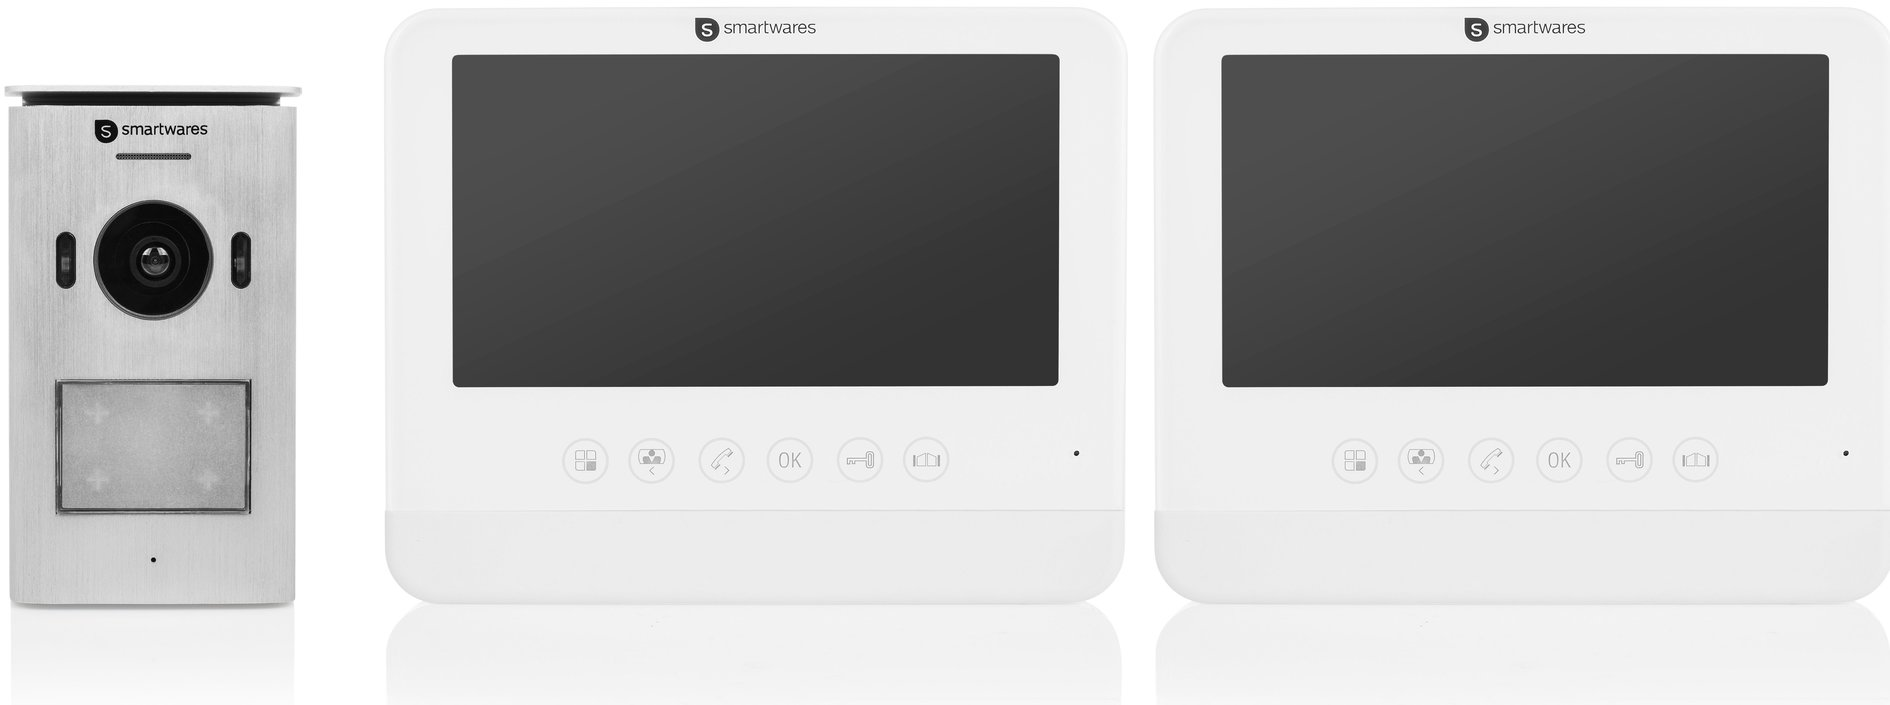 Smartwares DIC-22222 video-intercom met 2 binnenschermen